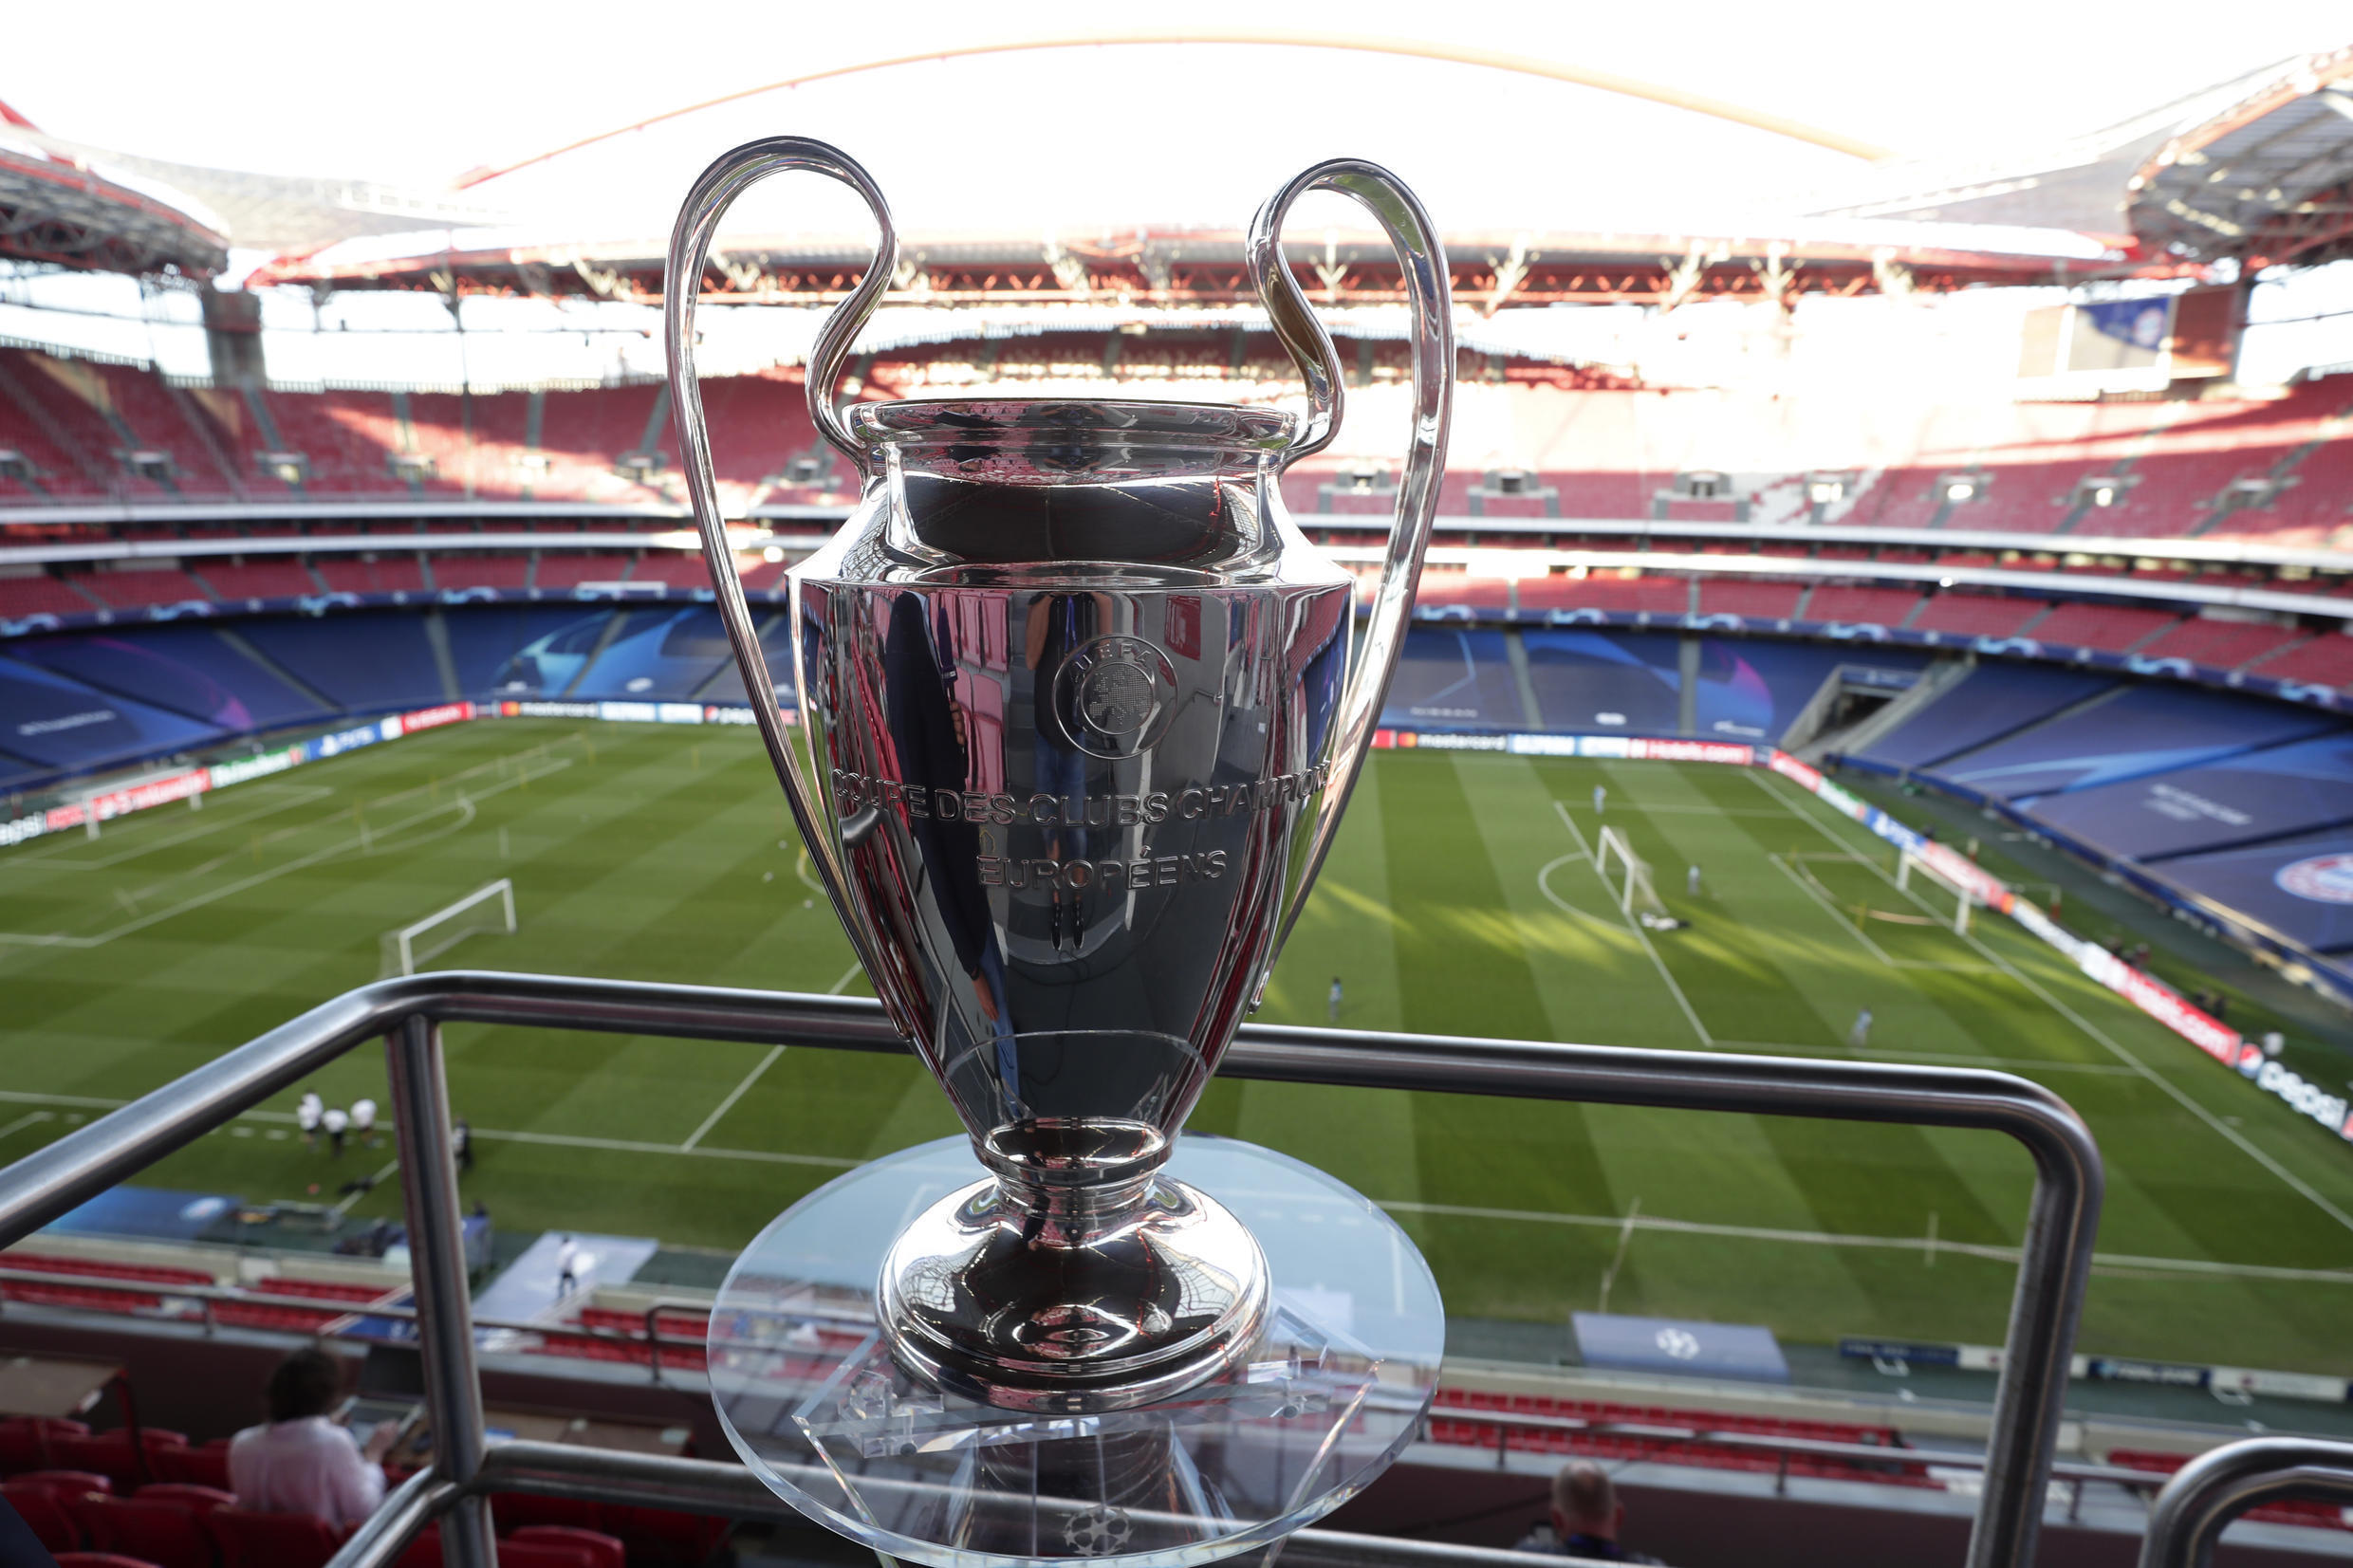 2020-08-22T183954Z_2050239326_UP1EG8M1FUI3H_RTRMADP_3_SOCCER-CHAMPIONS-BAY-PSG-PREVIEW